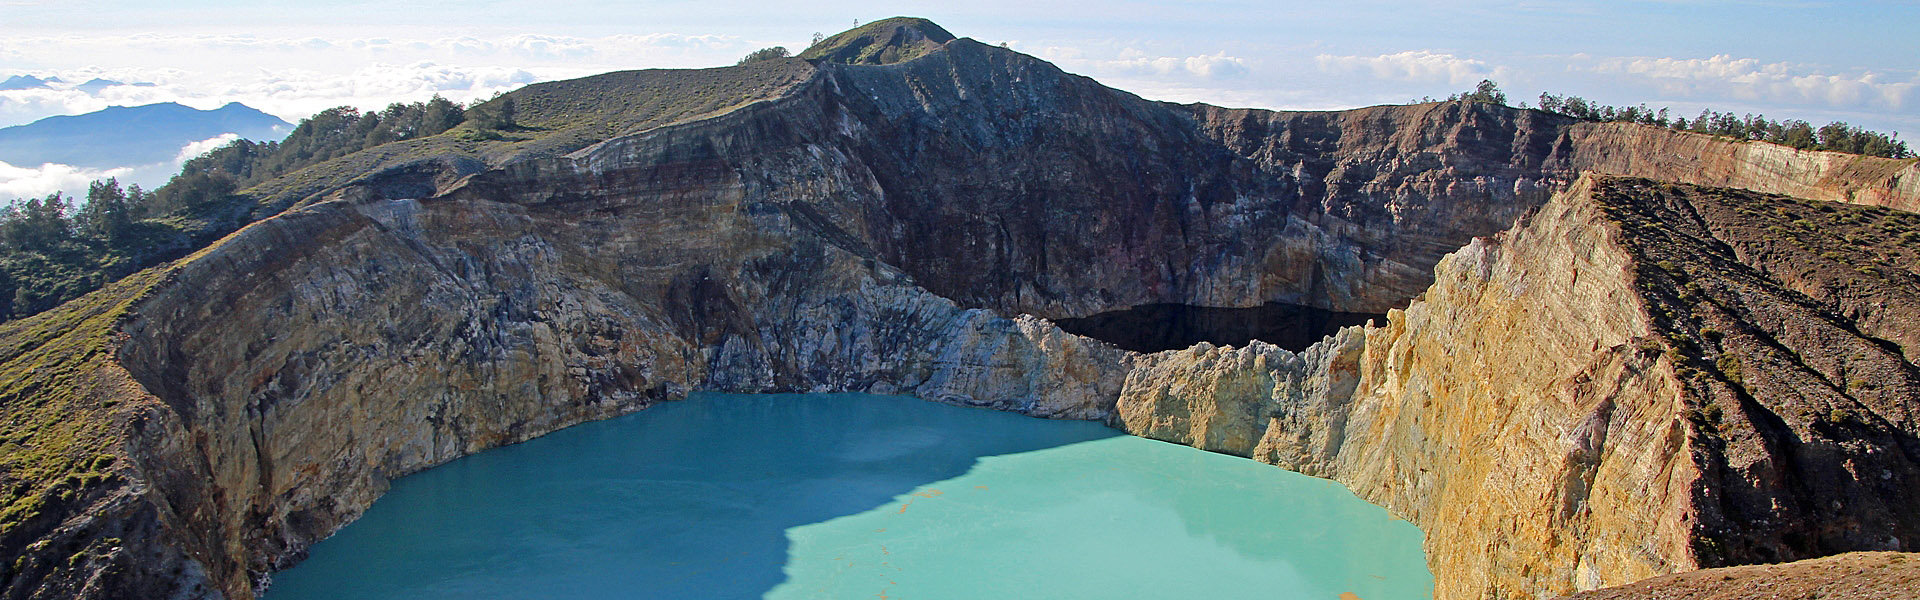 Coloured crater lakes of Kelimutu volcano, Flores Indonesia